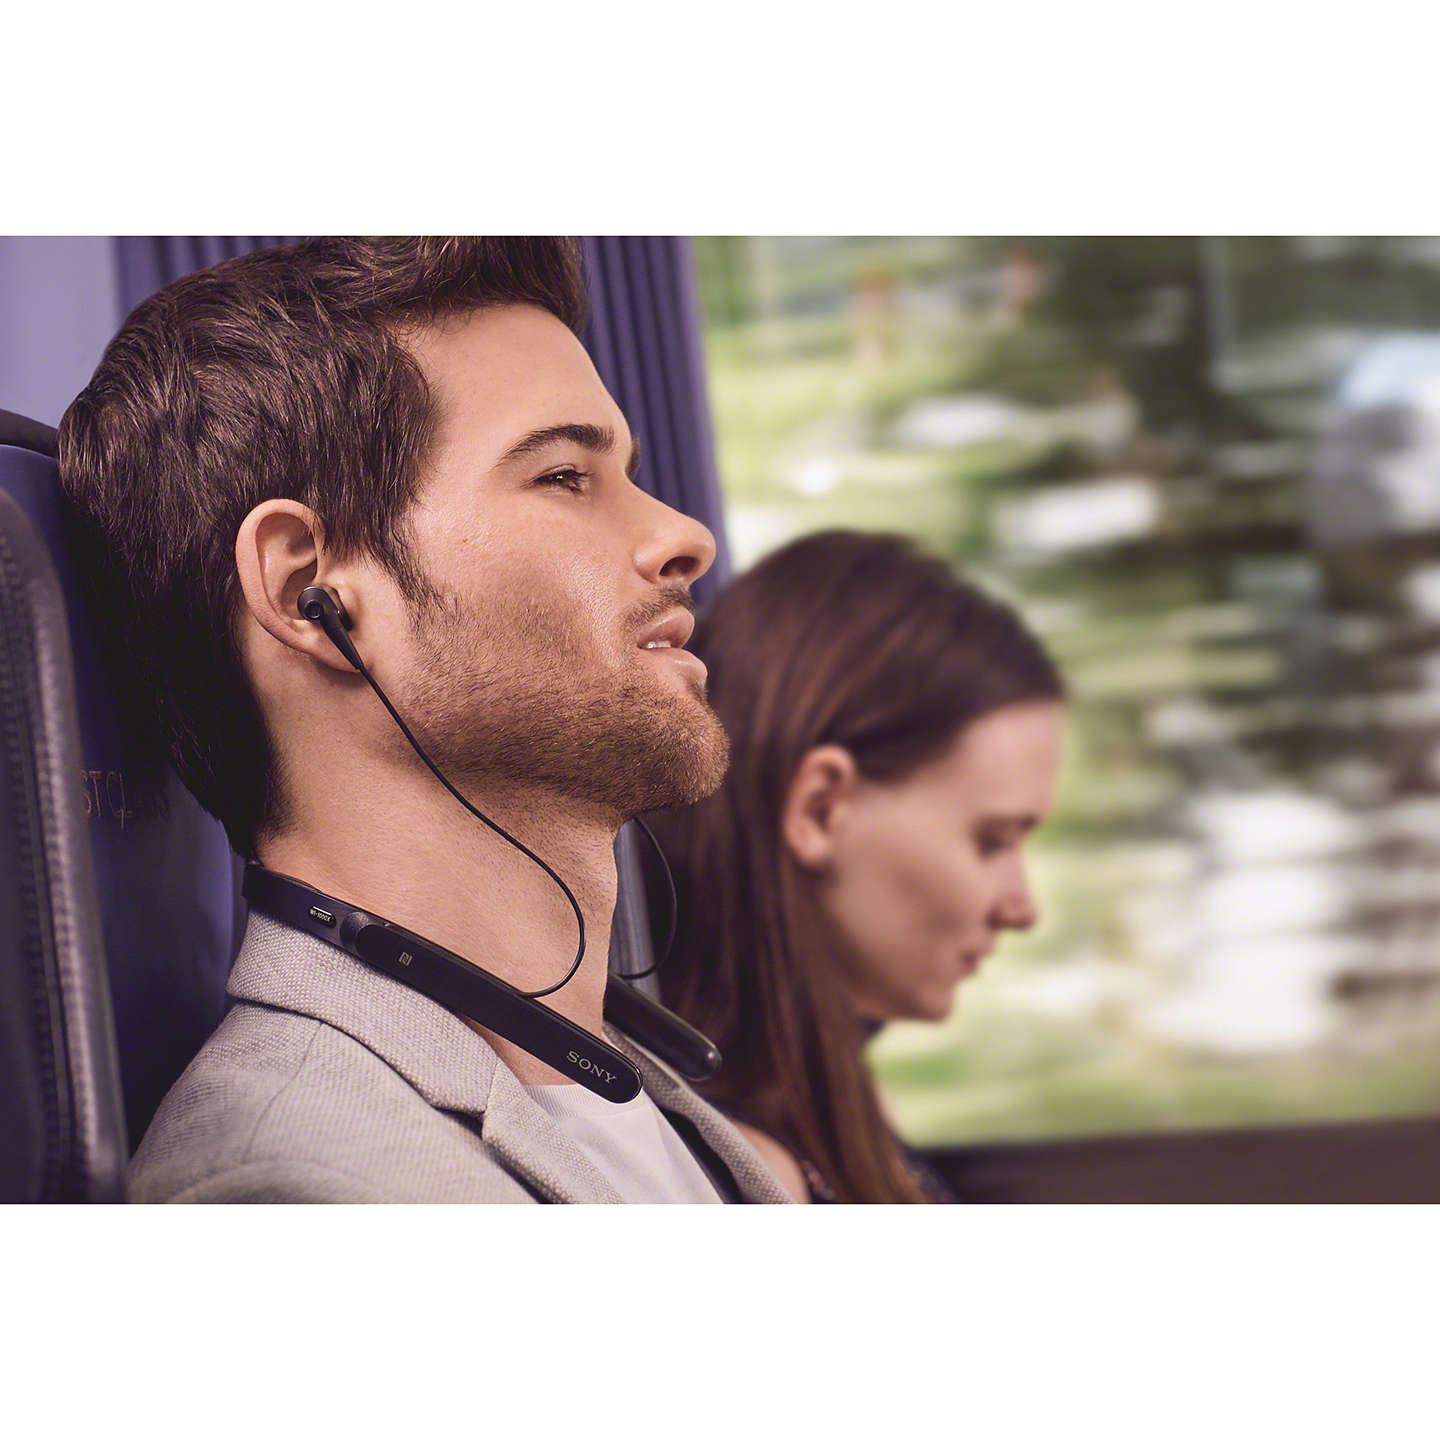 BuySony WI-1000X Noise Cancelling Wireless Bluetooth NFC High Resolution Audio In-Ear Headphones with Mic/Remote & Neckband, Black Online at johnlewis.com